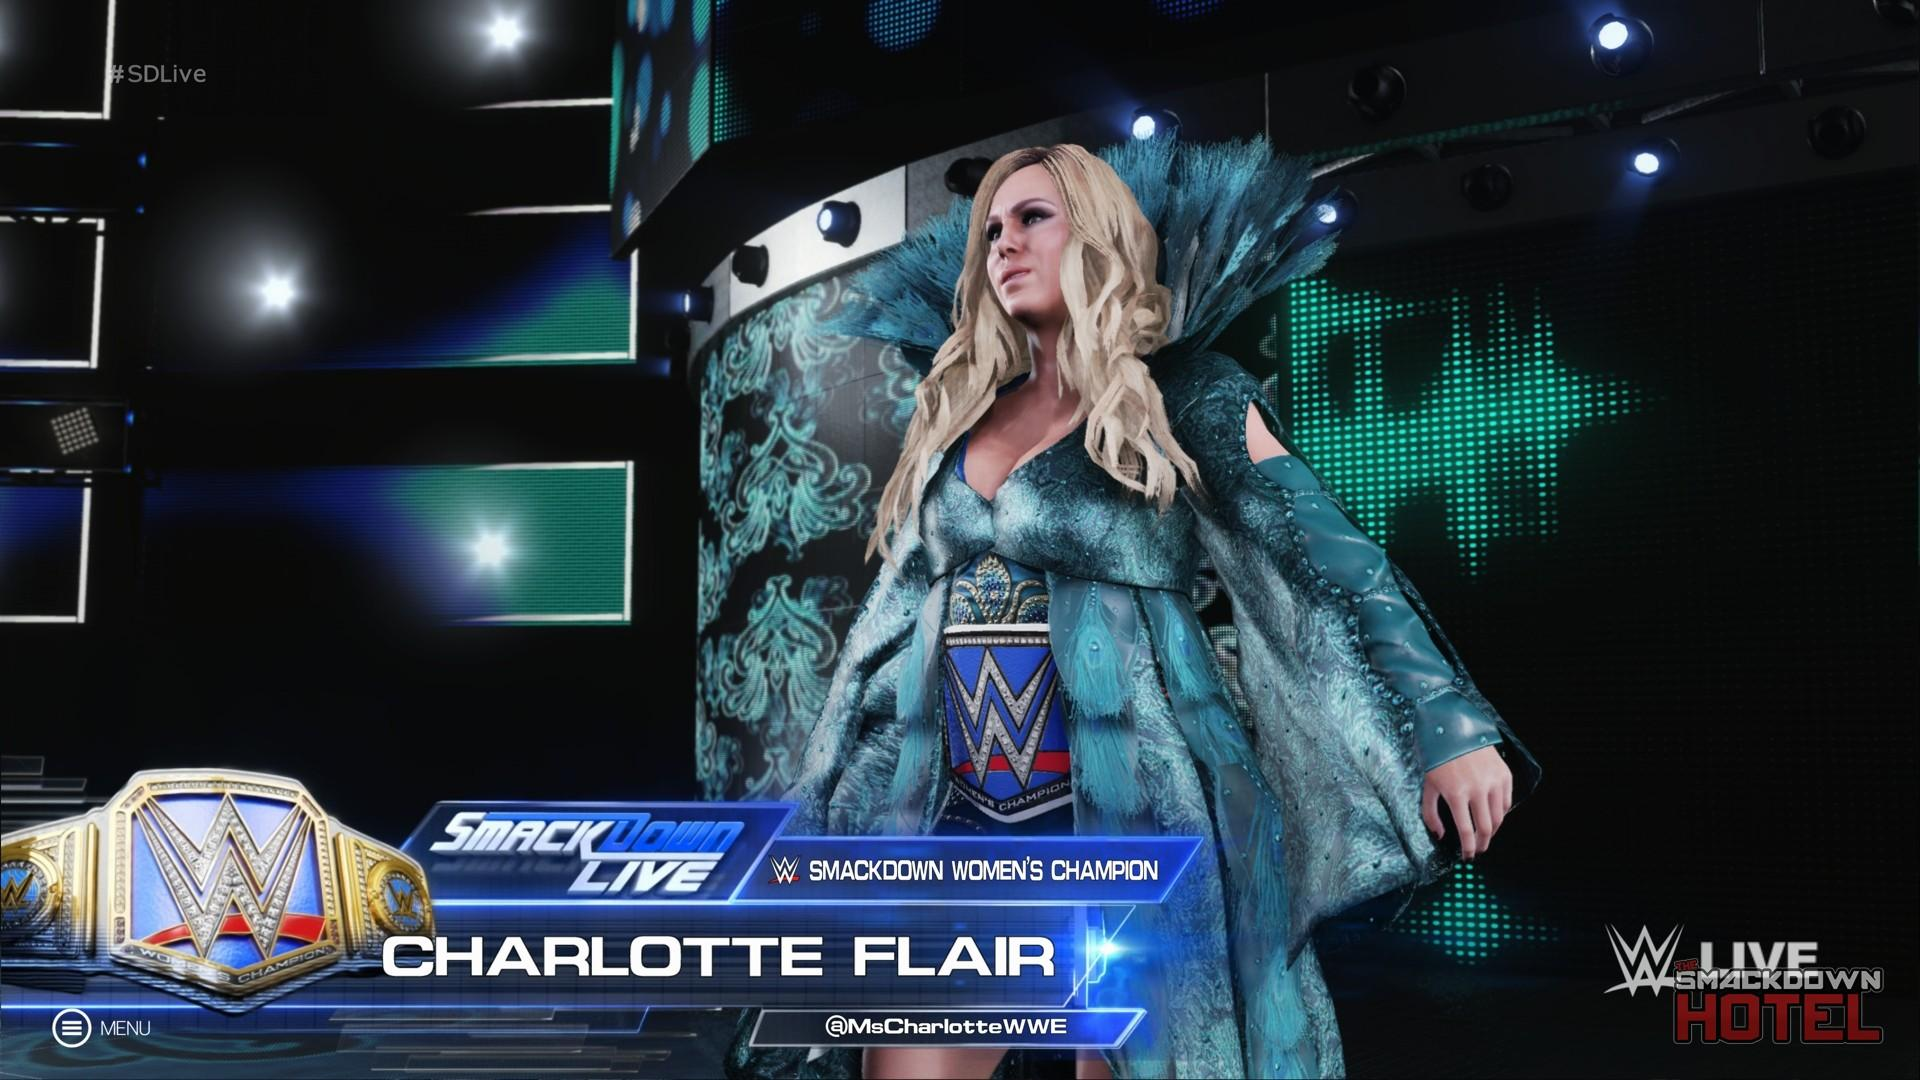 Wwe Songs Charlotte Flair - Wwe 2k19 - Roster